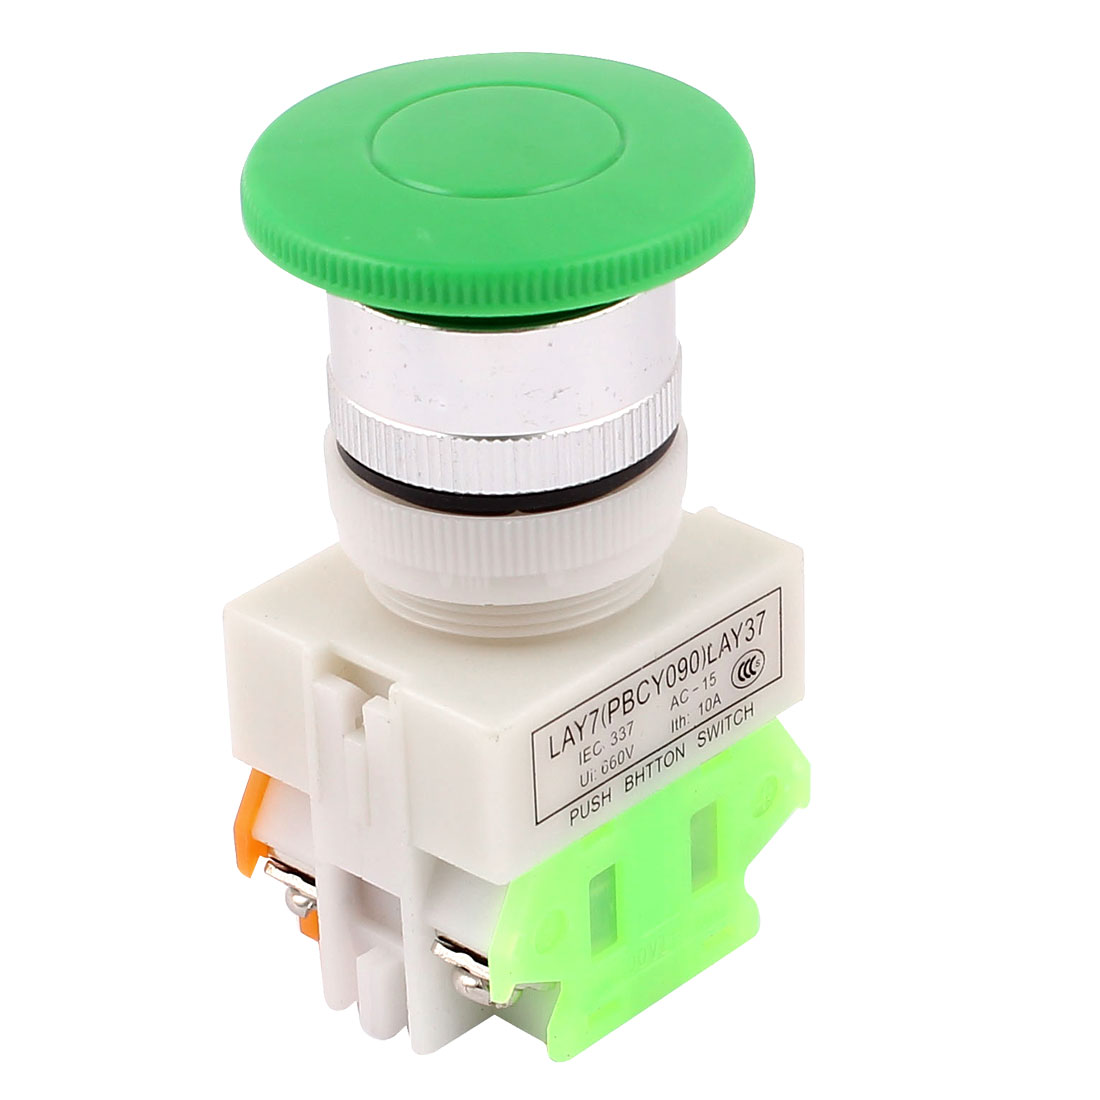 Ui 660V Ith 10A 4 Terminals Emergency Stop Green Mushroom Push Button Switch